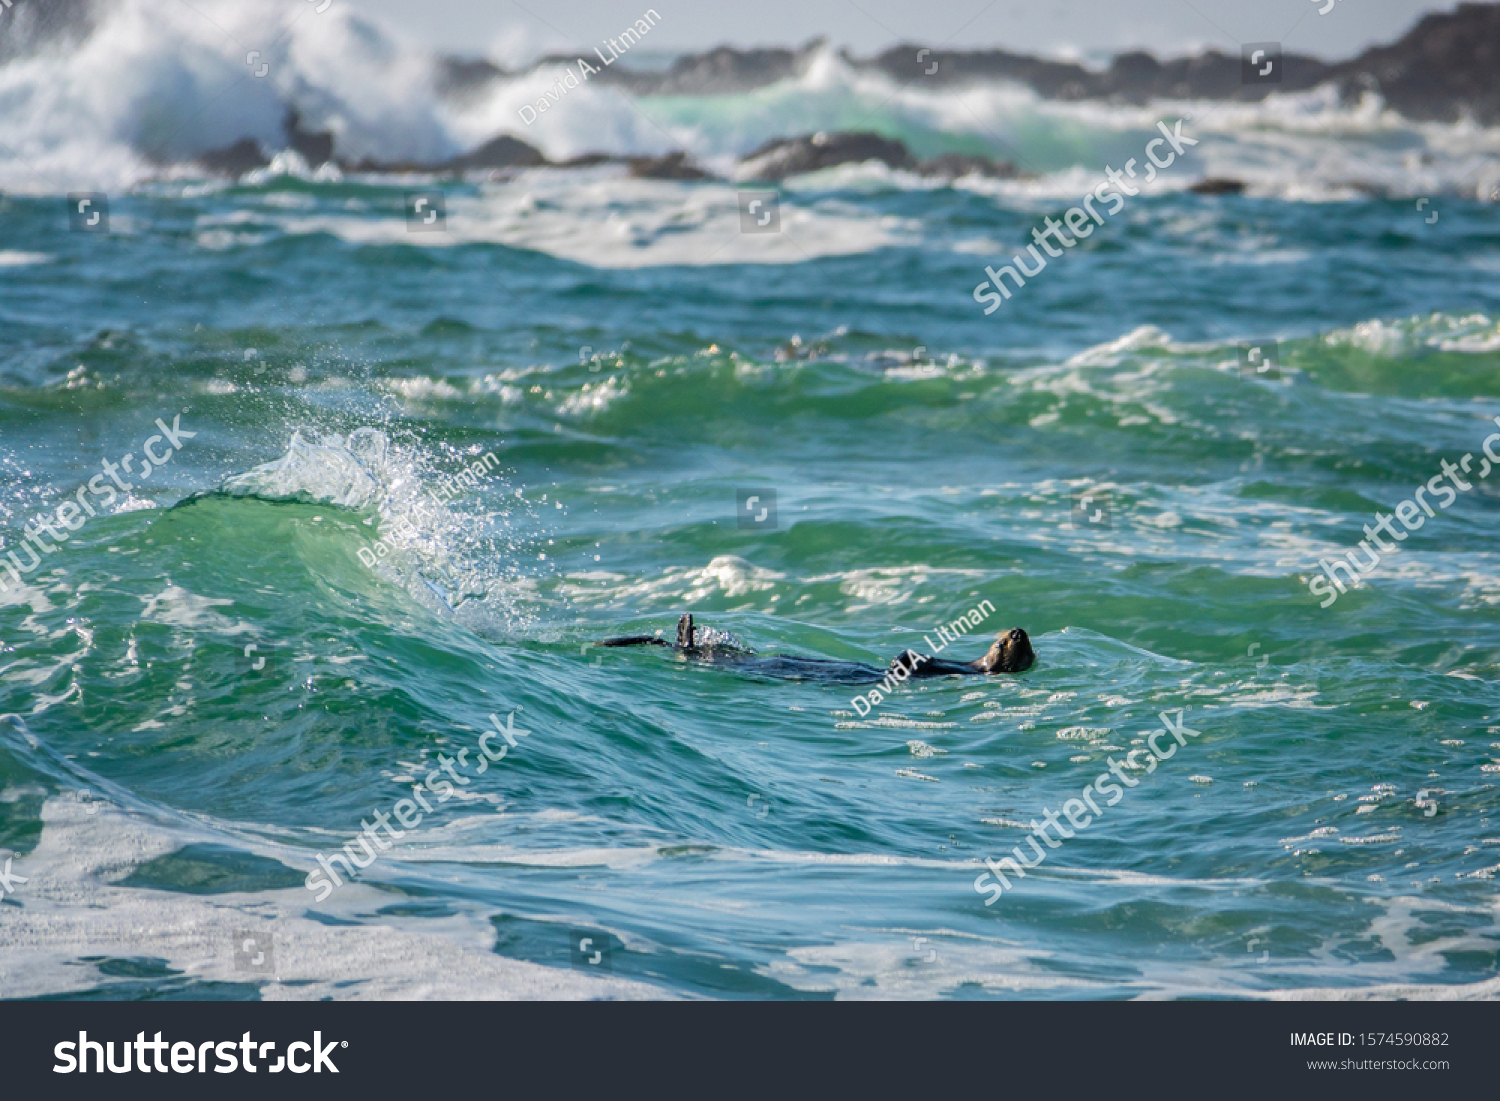 stock-photo-a-southern-sea-otter-enhydra-lutris-floats-on-her-back-in-the-rough-choppy-surf-in-the-waters-1574590882.jpg